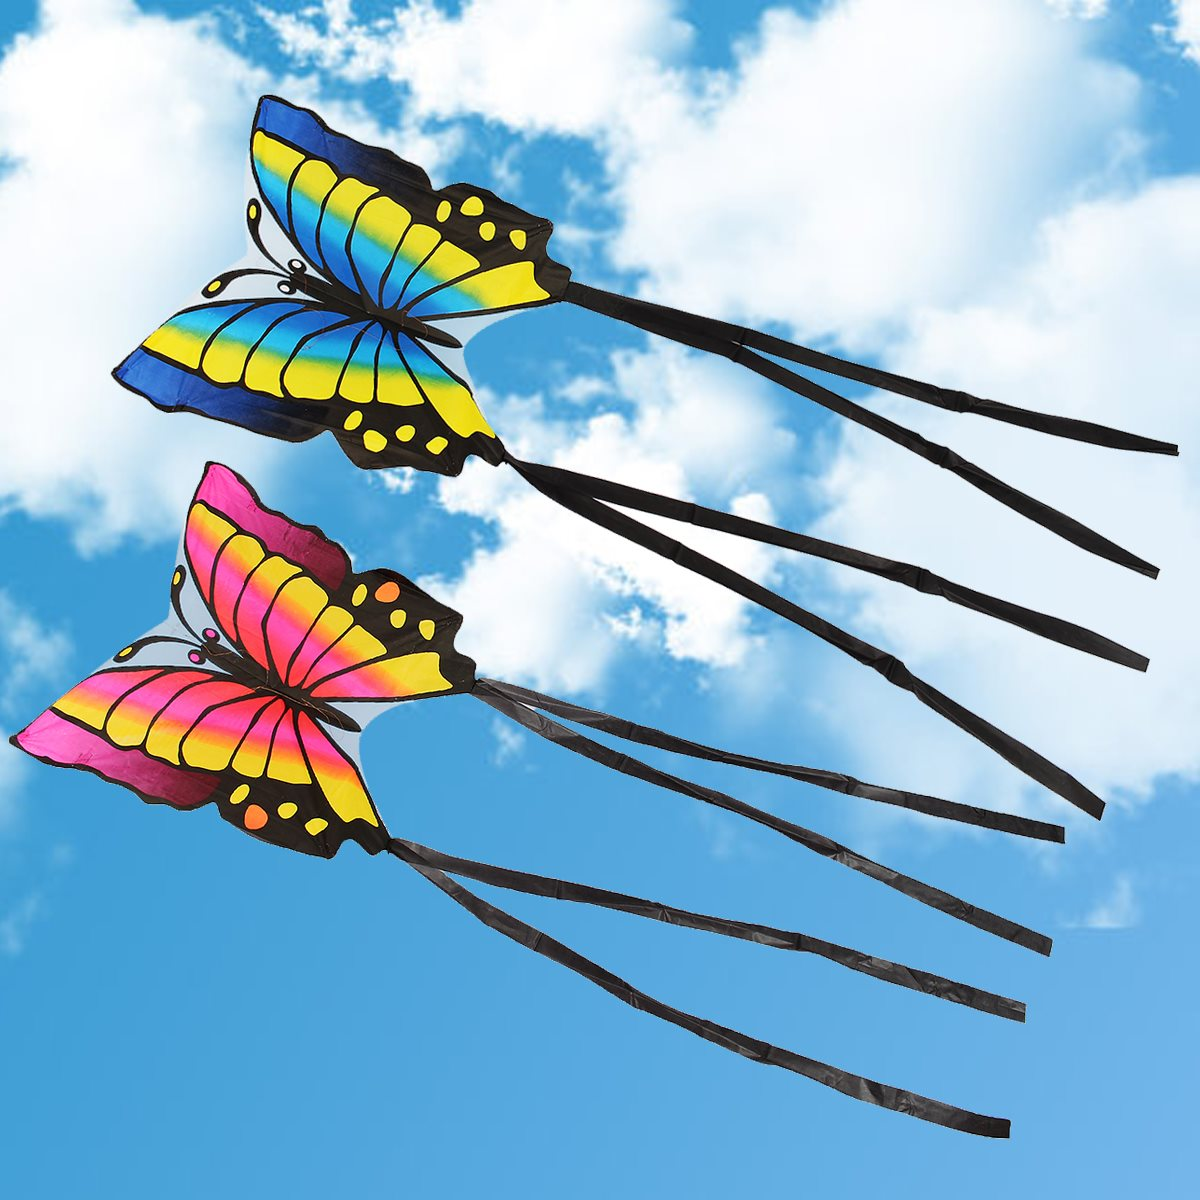 Butterfly-Kite-Easy-to-Fly-Single-Line-Kite-Tail-15M-For-Kids-Outdoor-Funny-Sports-Toy-Gift-Funny-Sport-Outdoor-Playing-Toys-1